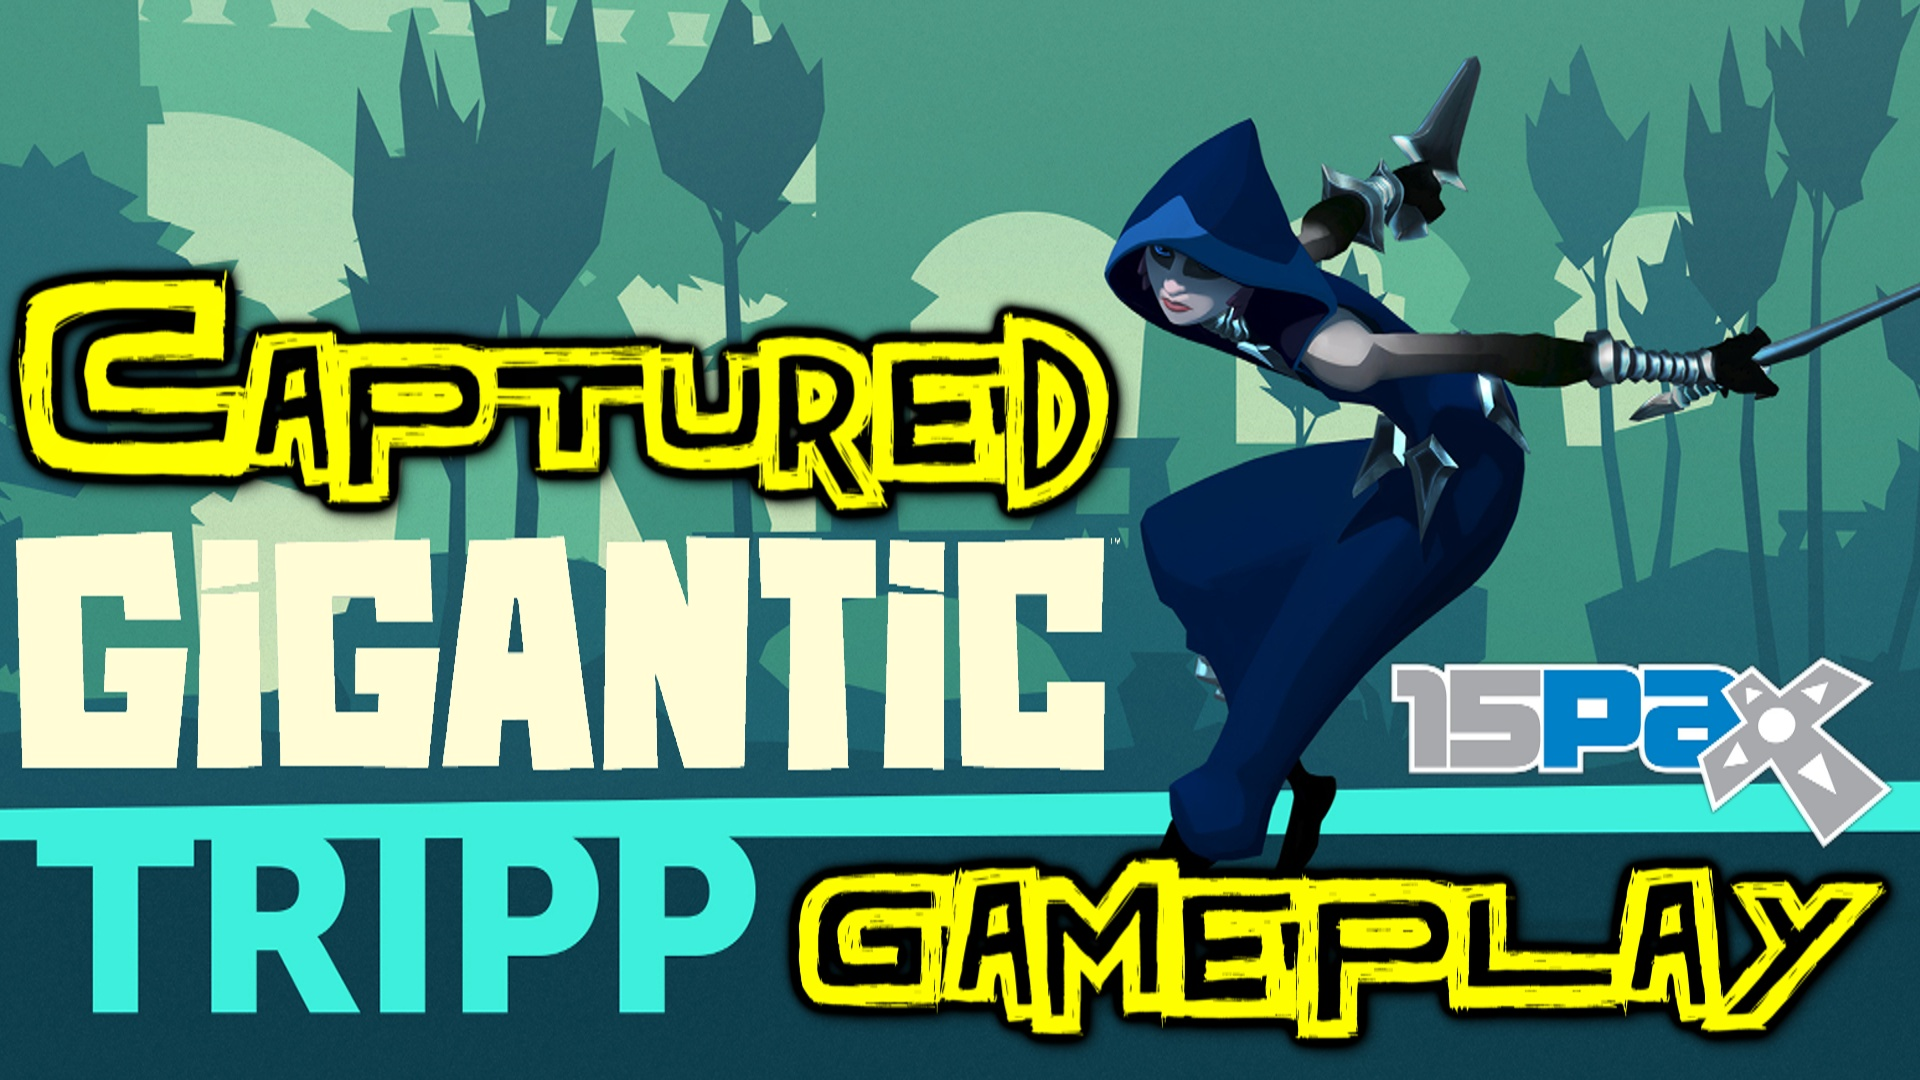 Gigantic - Captured Tripp Gameplay PAX Prime 2015